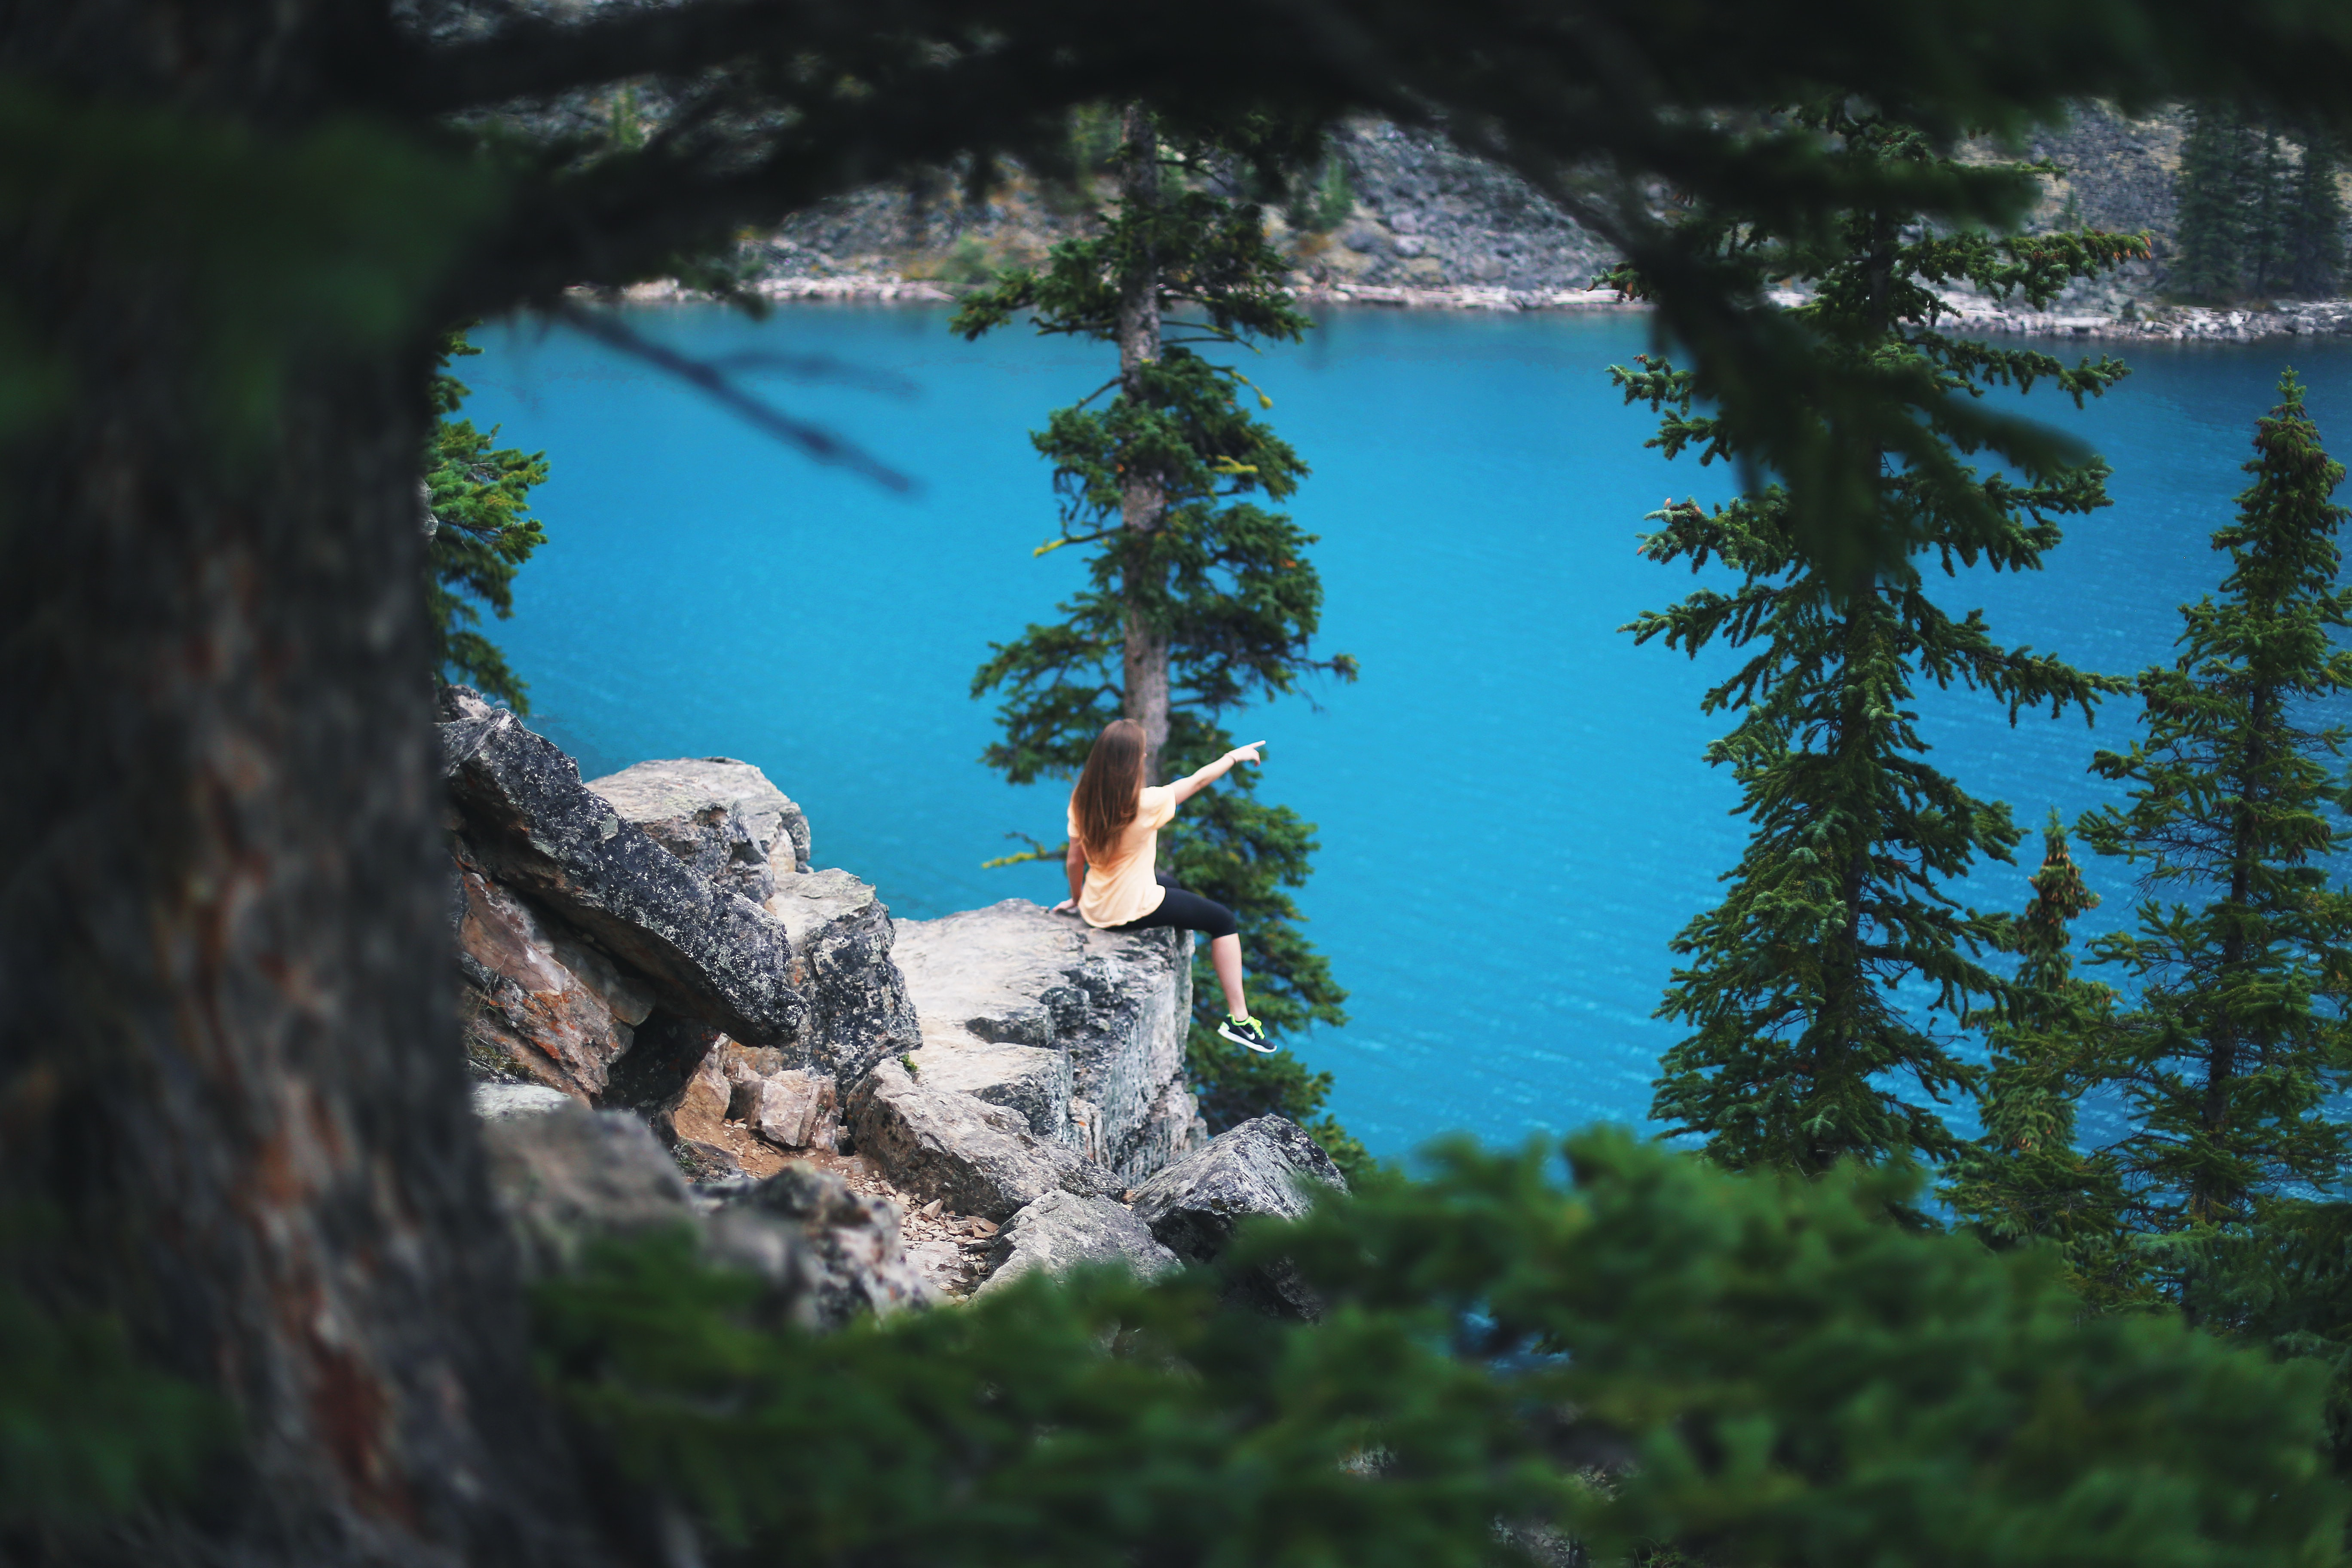 girl sitting on cliff near trees pointing towards body of water